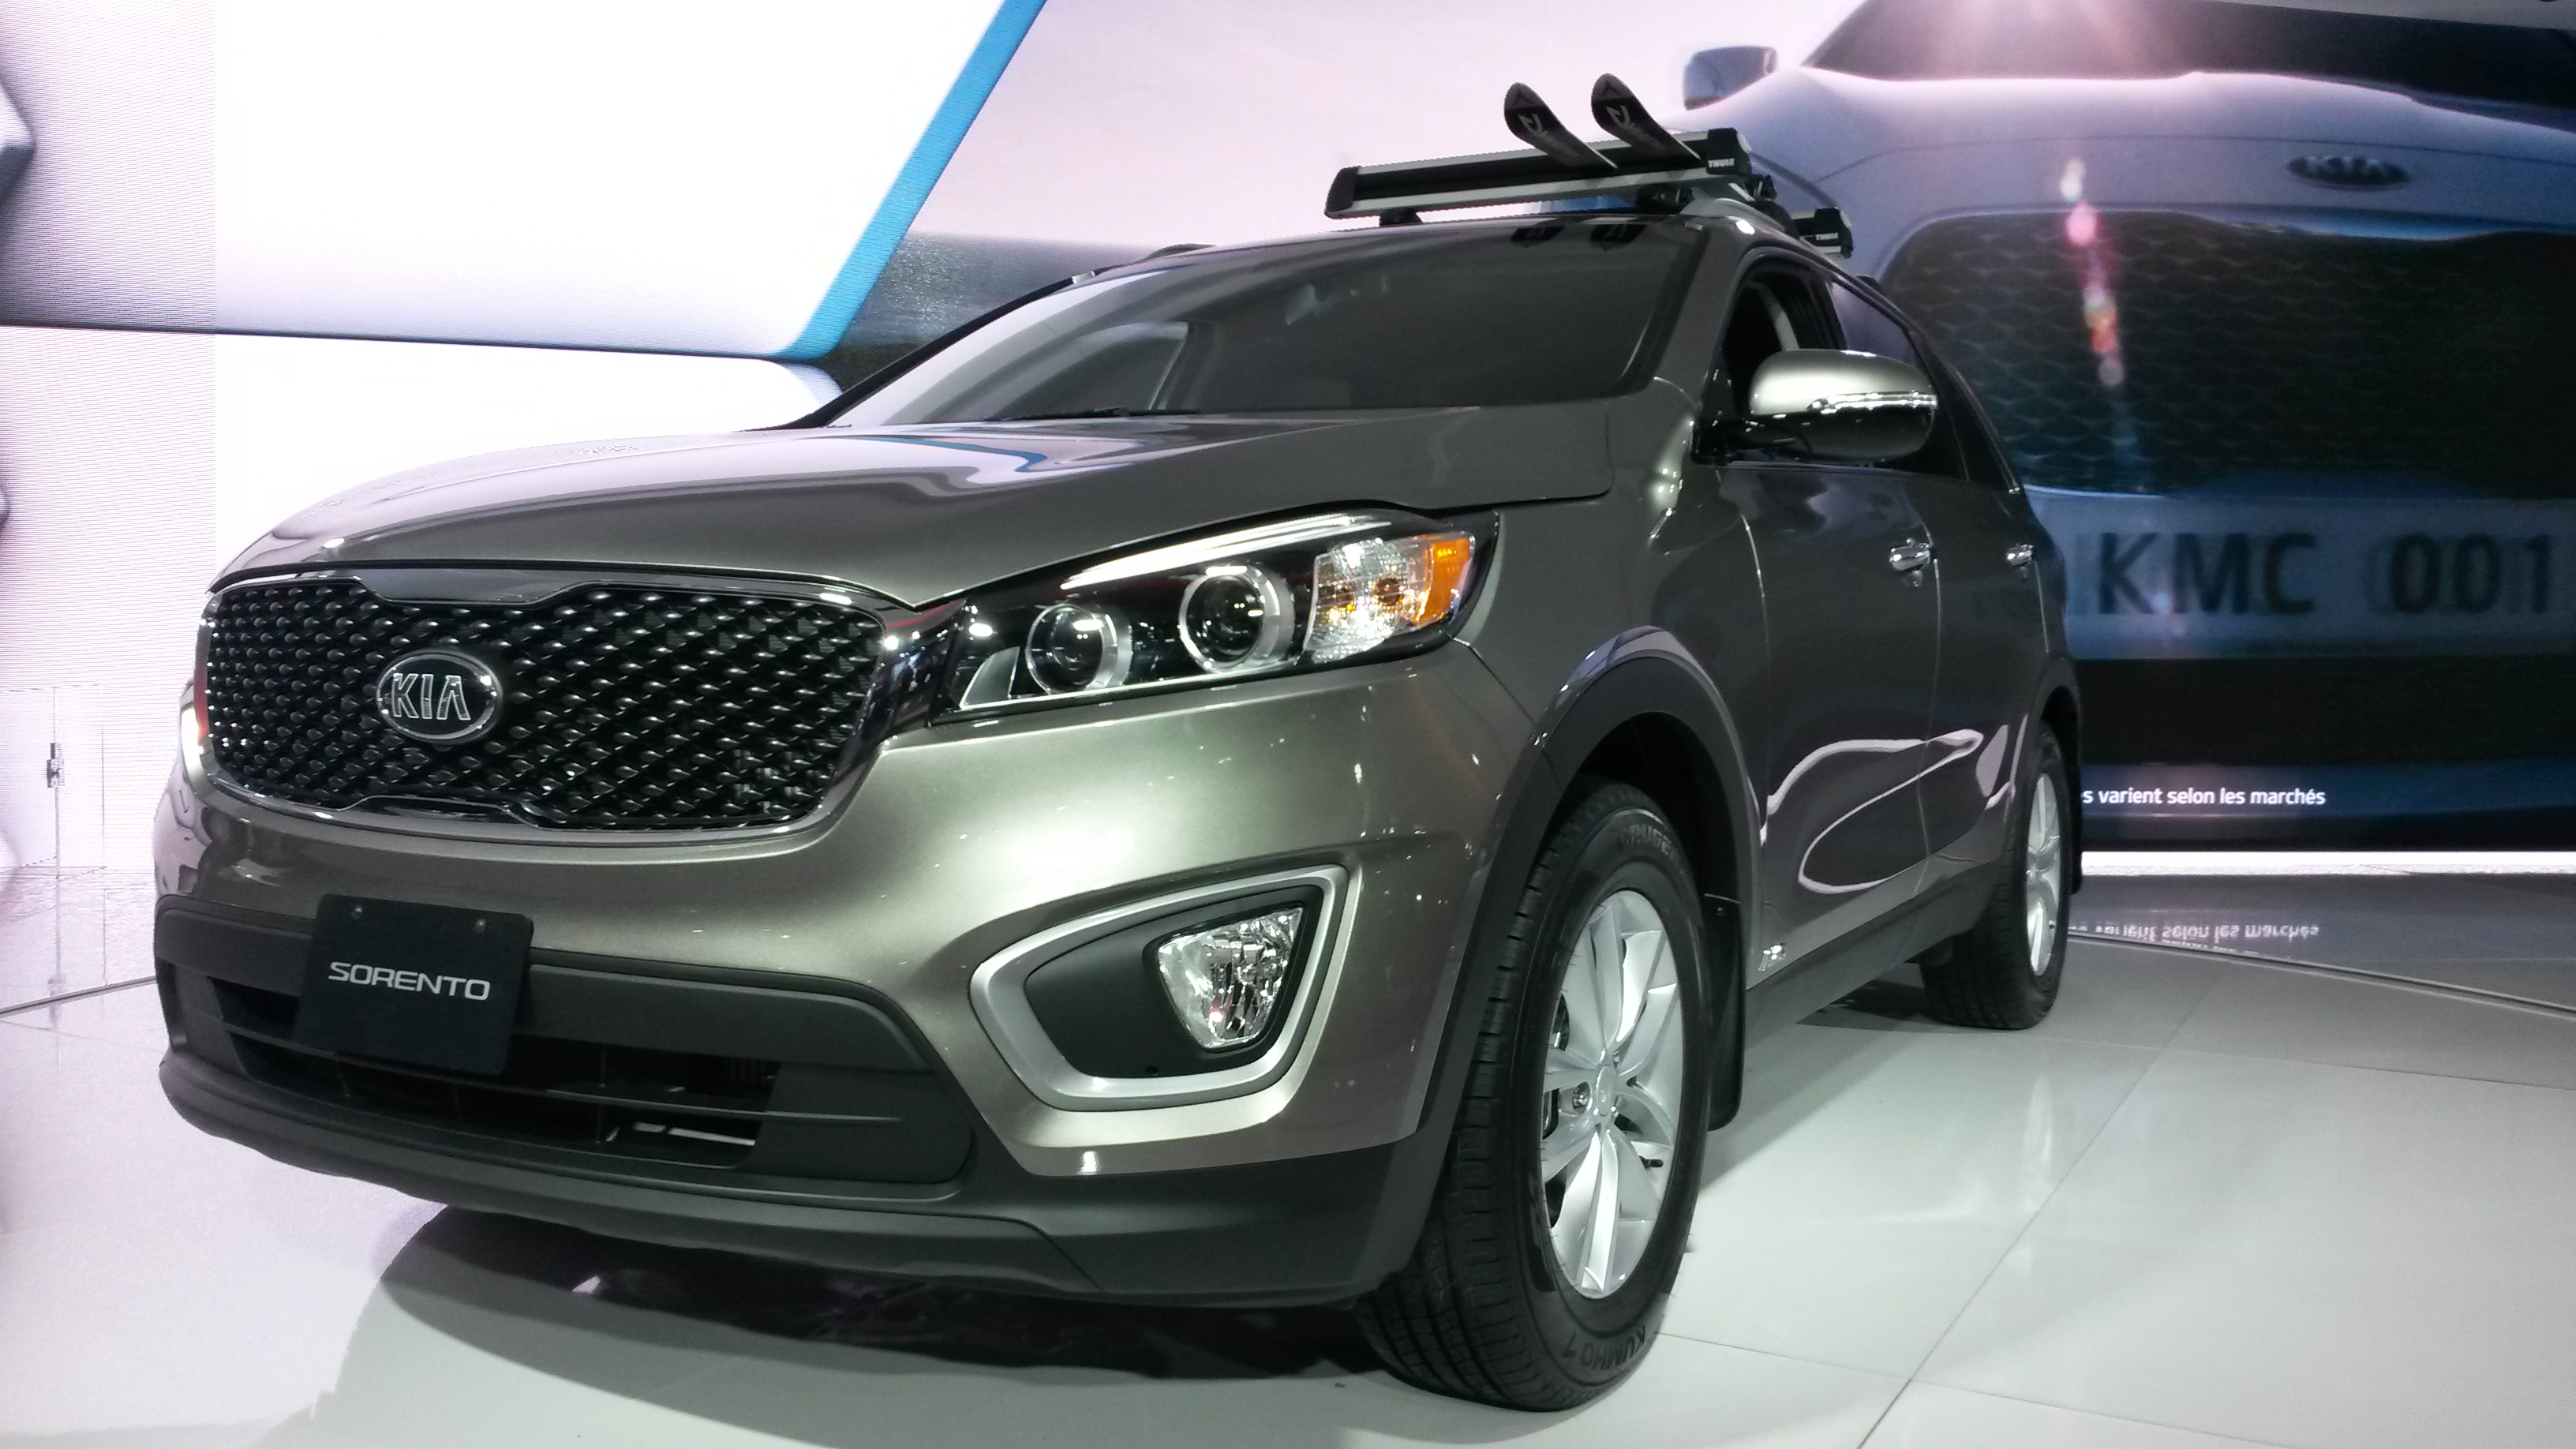 nz all driven arrives for sorento showroom kia sale rear new image download in